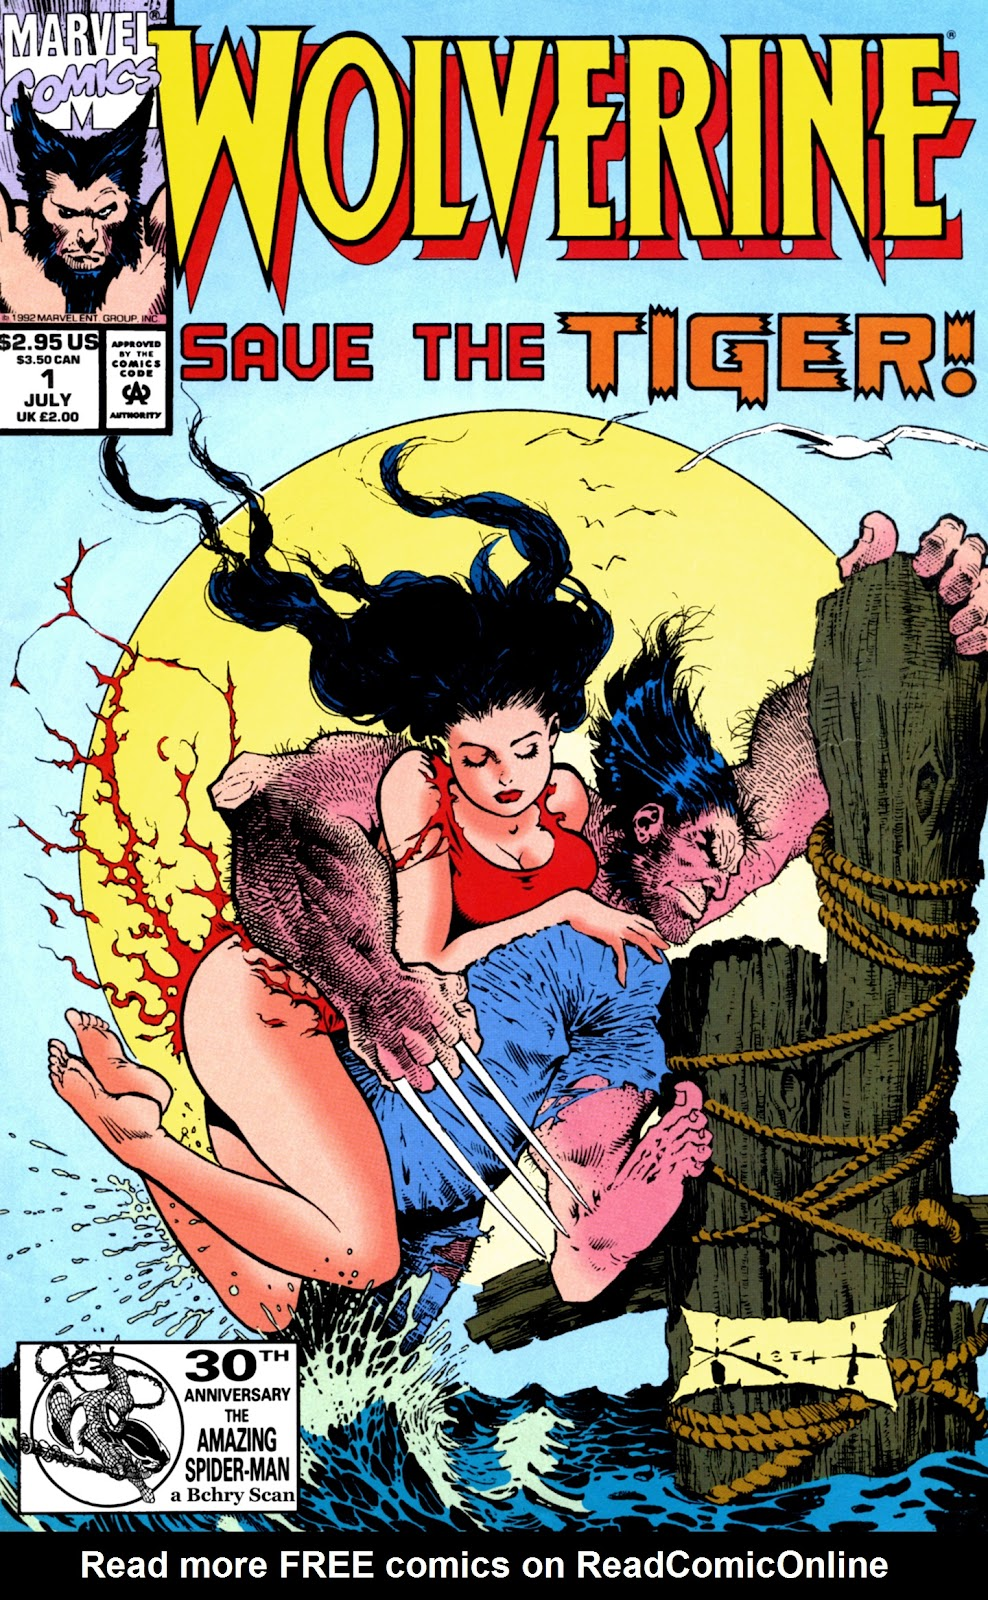 Wolverine: Save the Tiger Full Page 1